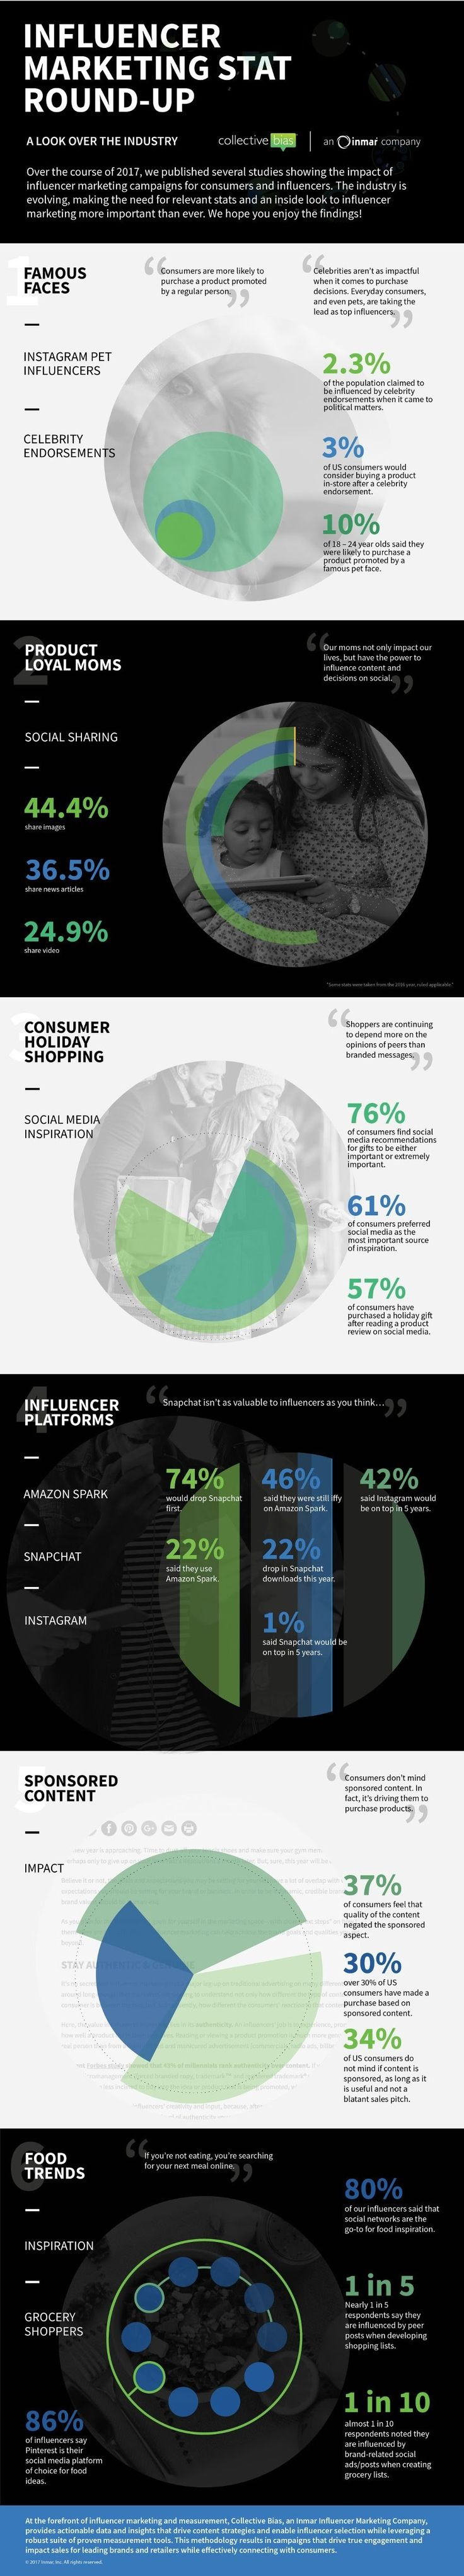 Influencer Marketing Stats Round-Up - #infographic